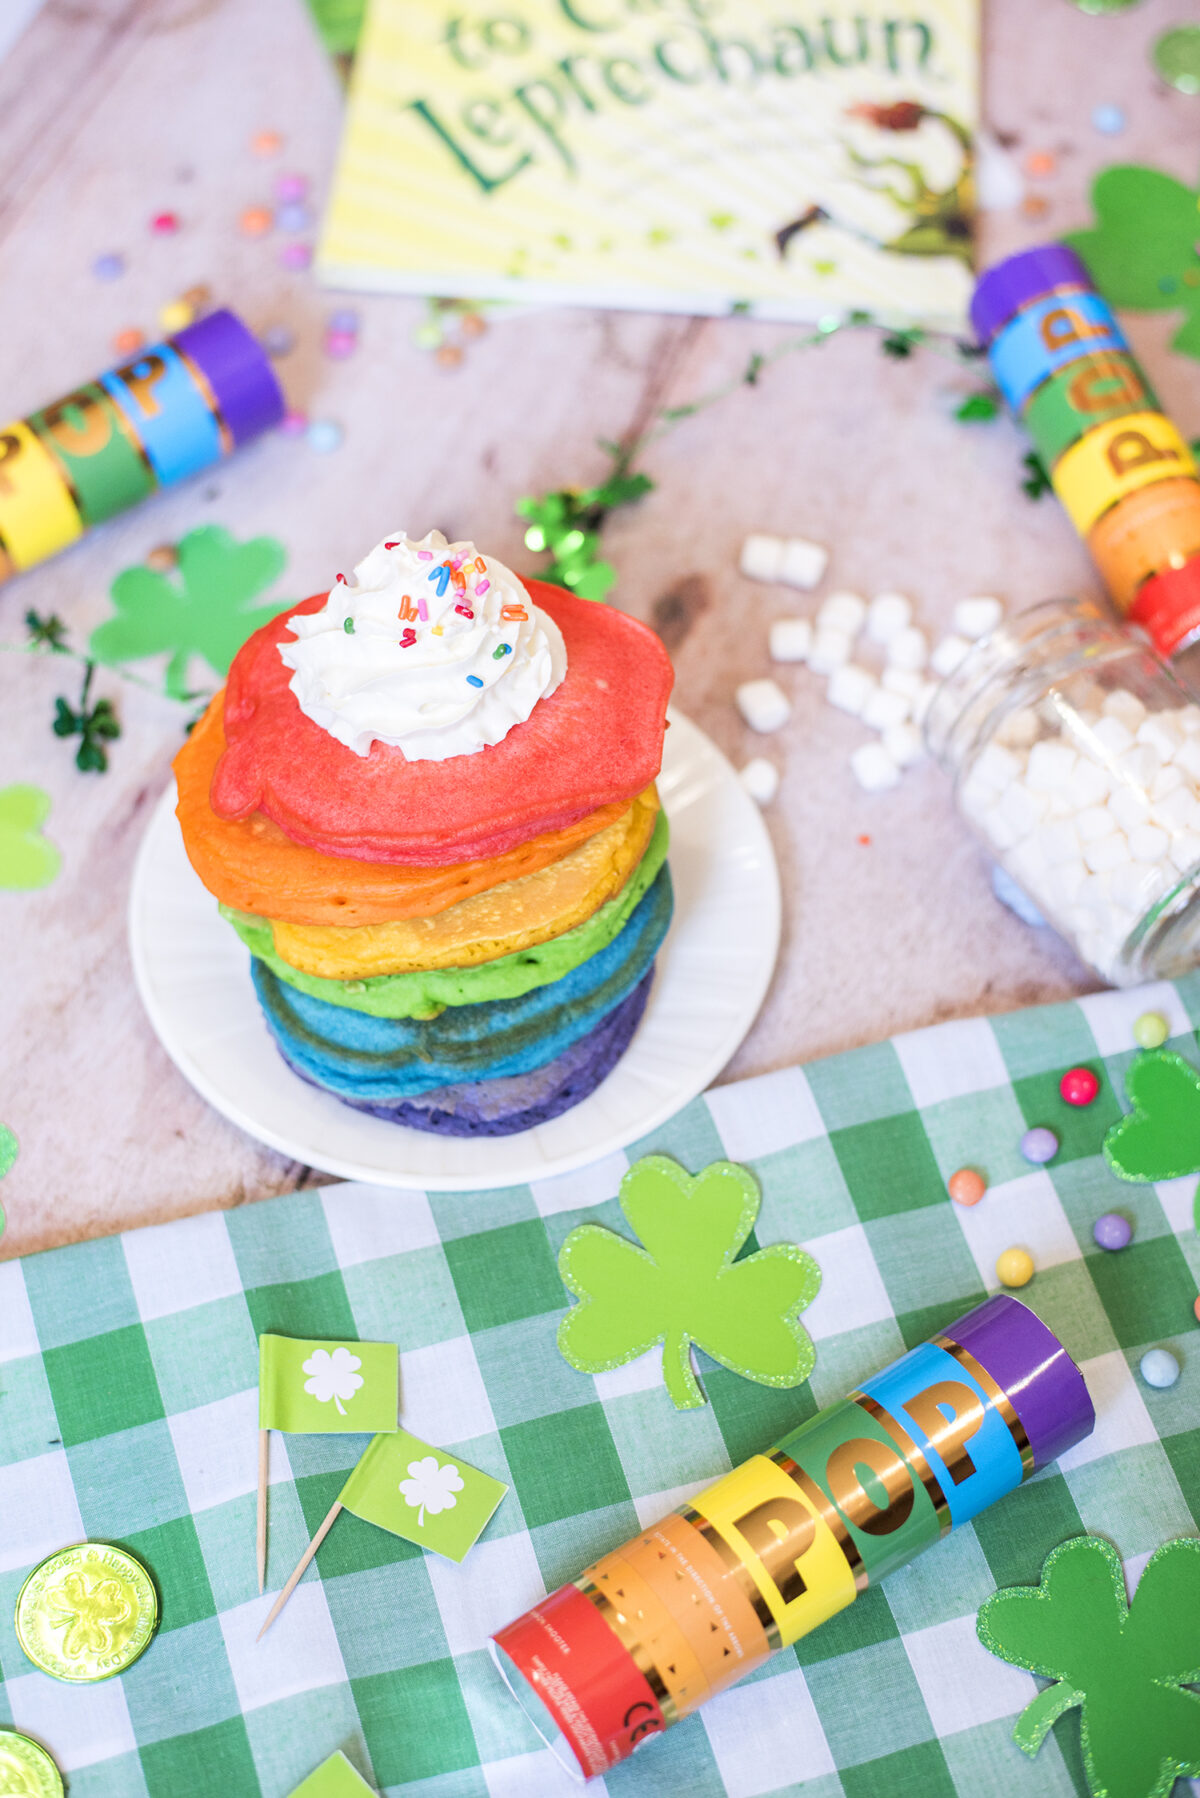 Celebrate St. Patrick's Day with rainbow pancakes and a scavenger hunt to find the leprechaun's gold coins!